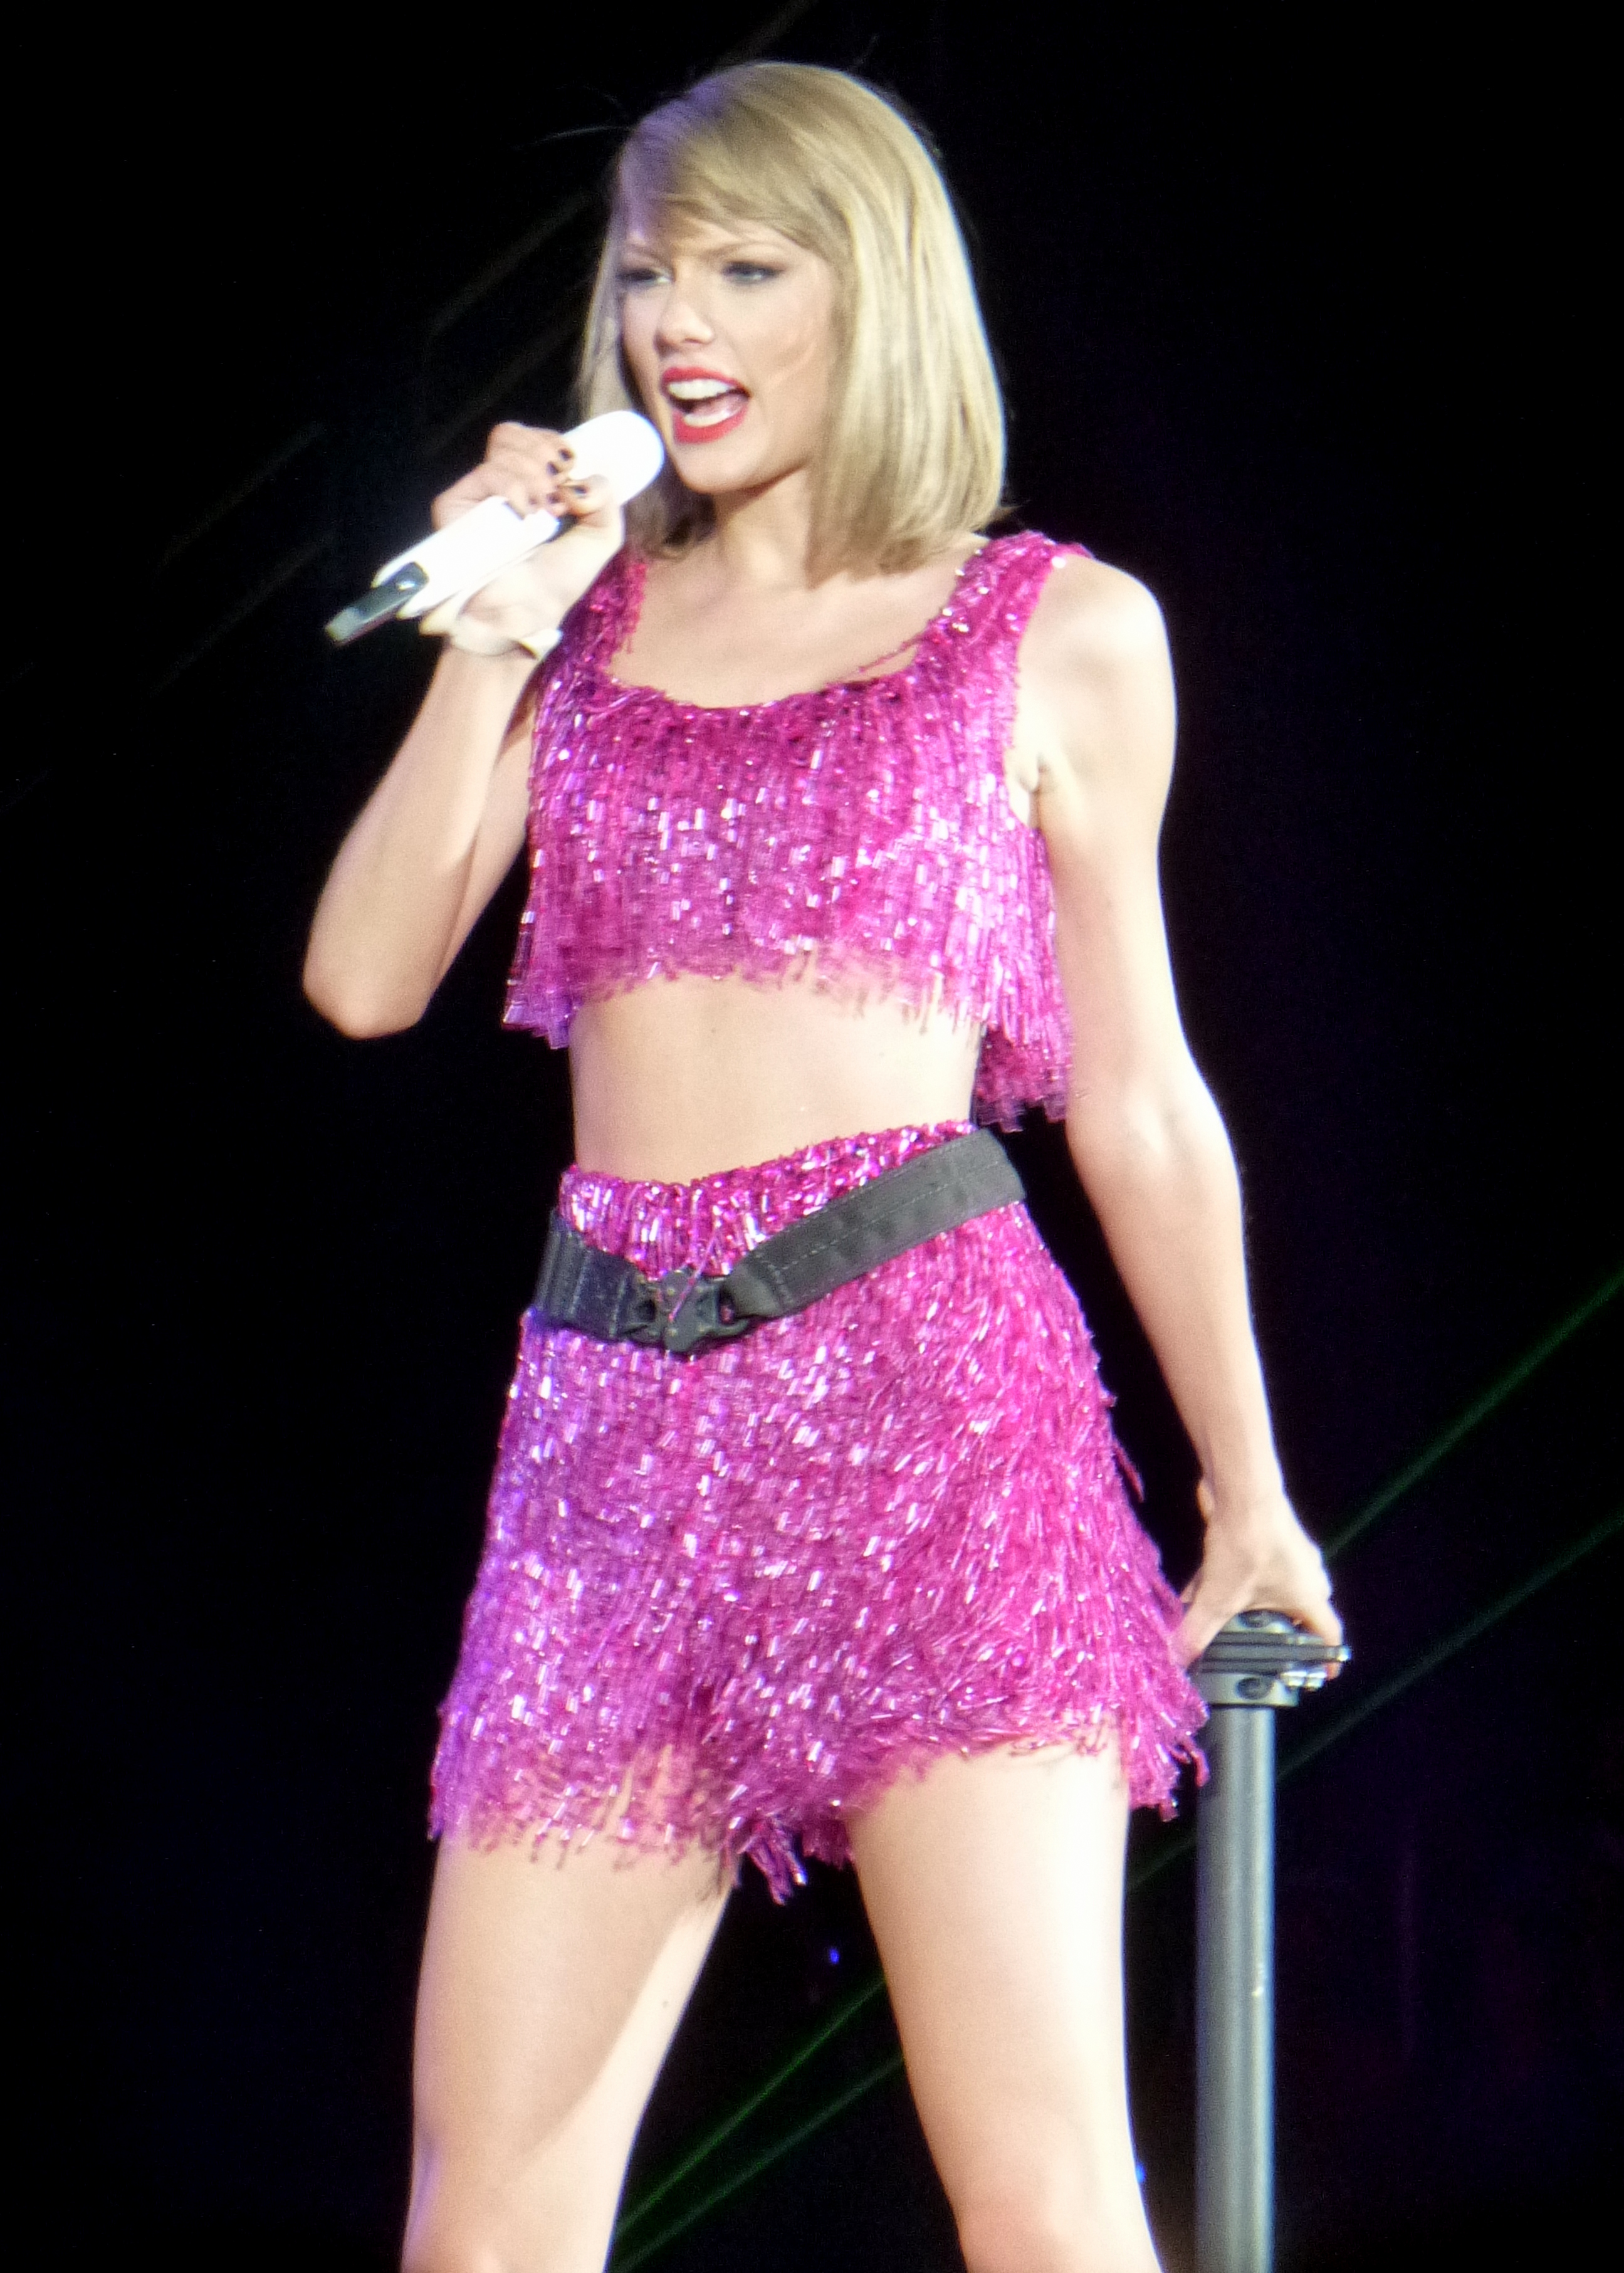 A photograph of Taylor Swift